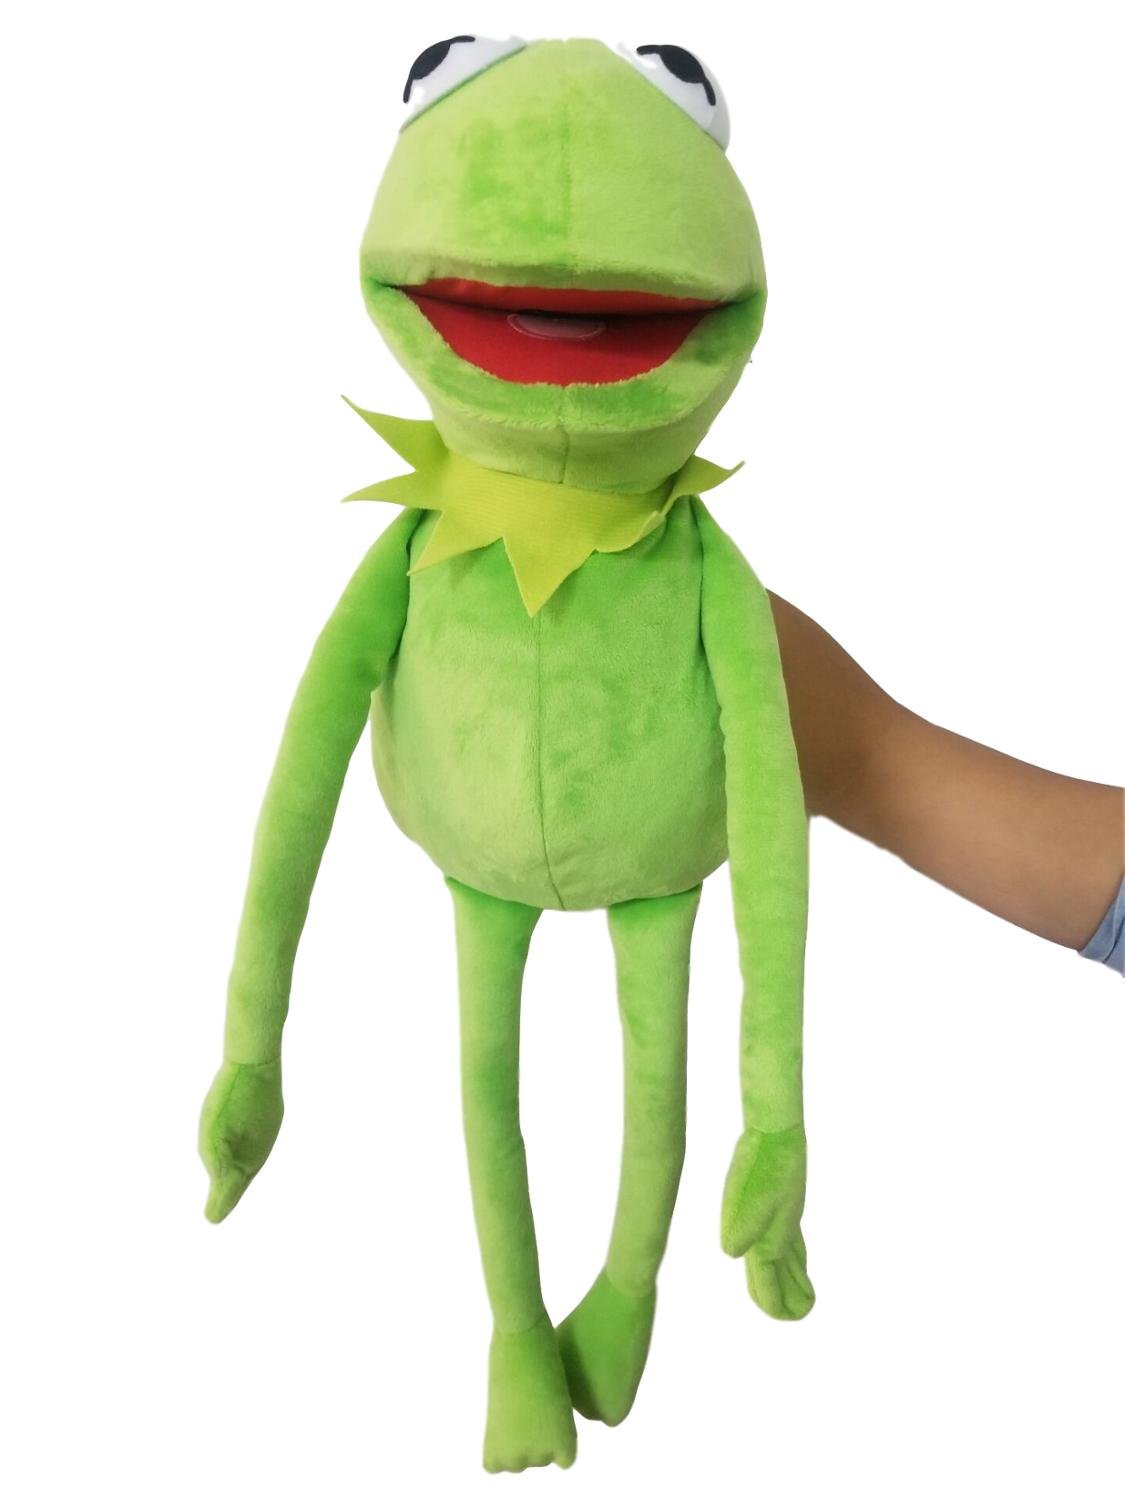 Sesame Street The Muppet Show Large 60cm Kermit Frog Puppets Plush Toy Doll Stuffed Toys For Kids Christmas Gift